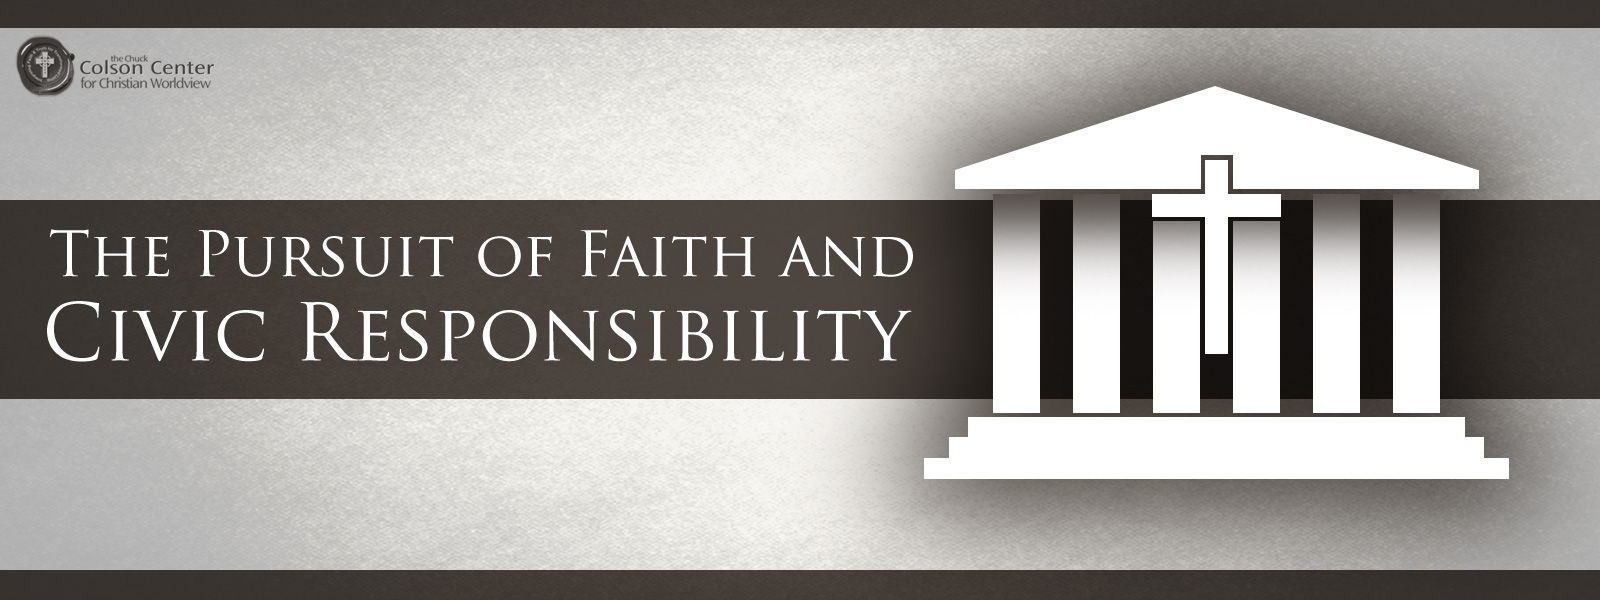 The Pursuit of Faith and Civic Responsibility